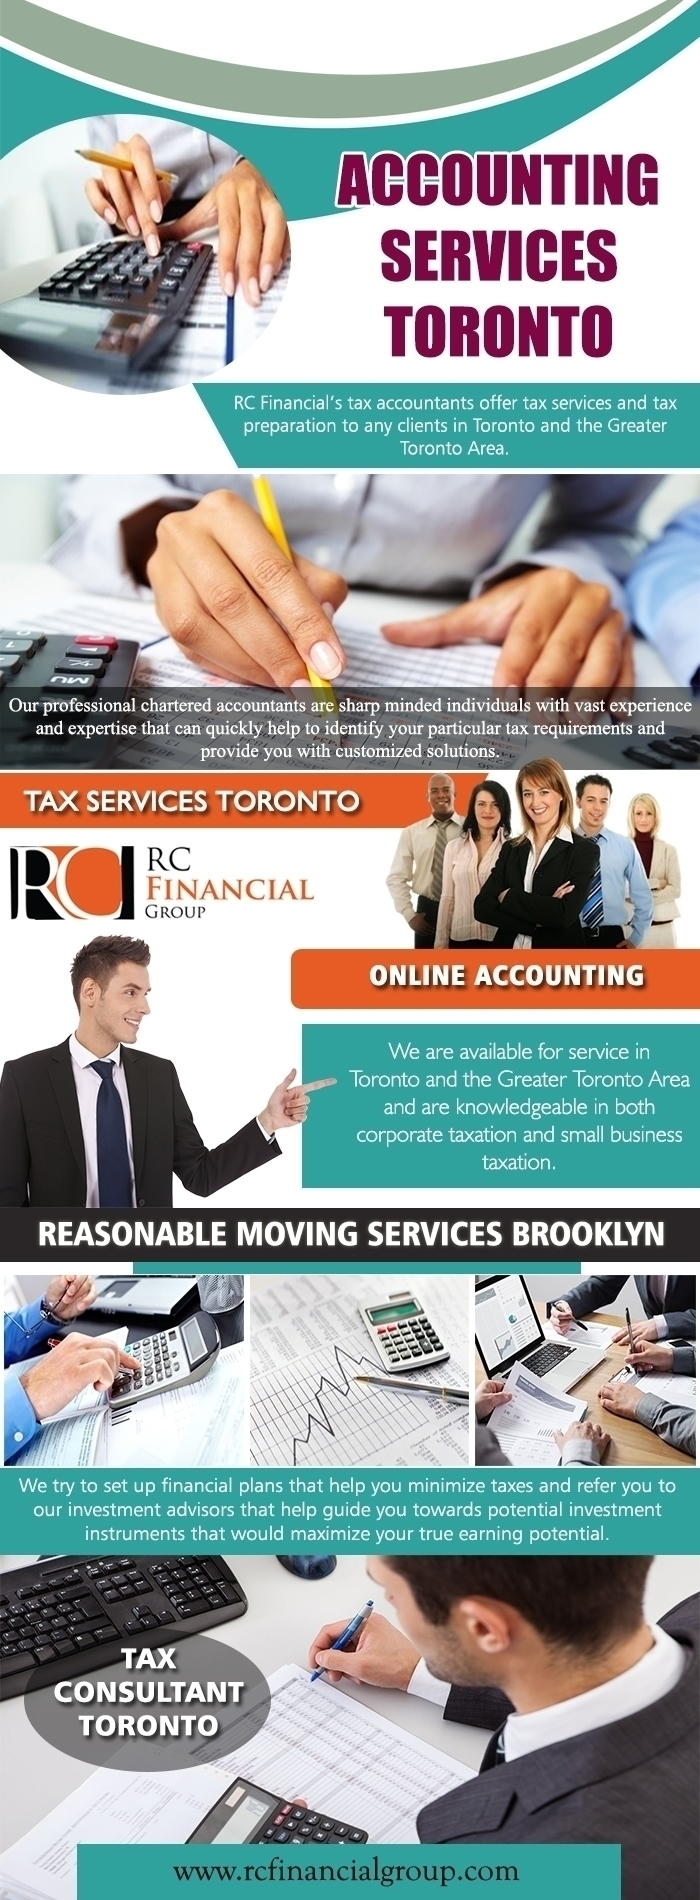 Mississauga Accountant Site ple - mississaugaaccountant | ello